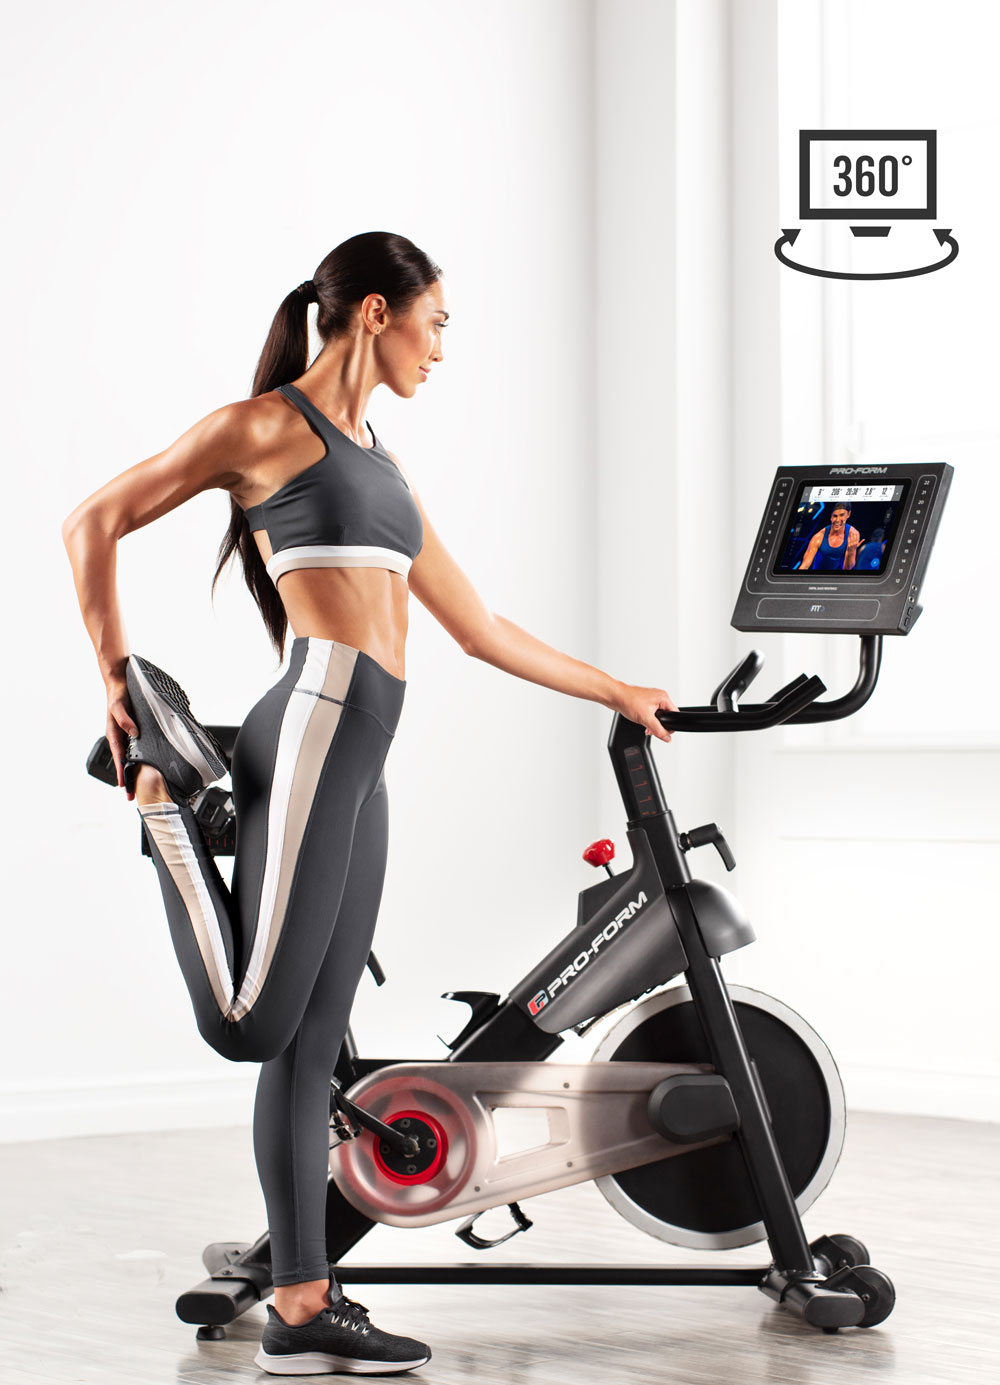 Better Off the bike Training  is incorporated into iFit Studio Classes and supported by the bike's touchscreen's ability to swivel and/or tilt for better viewing